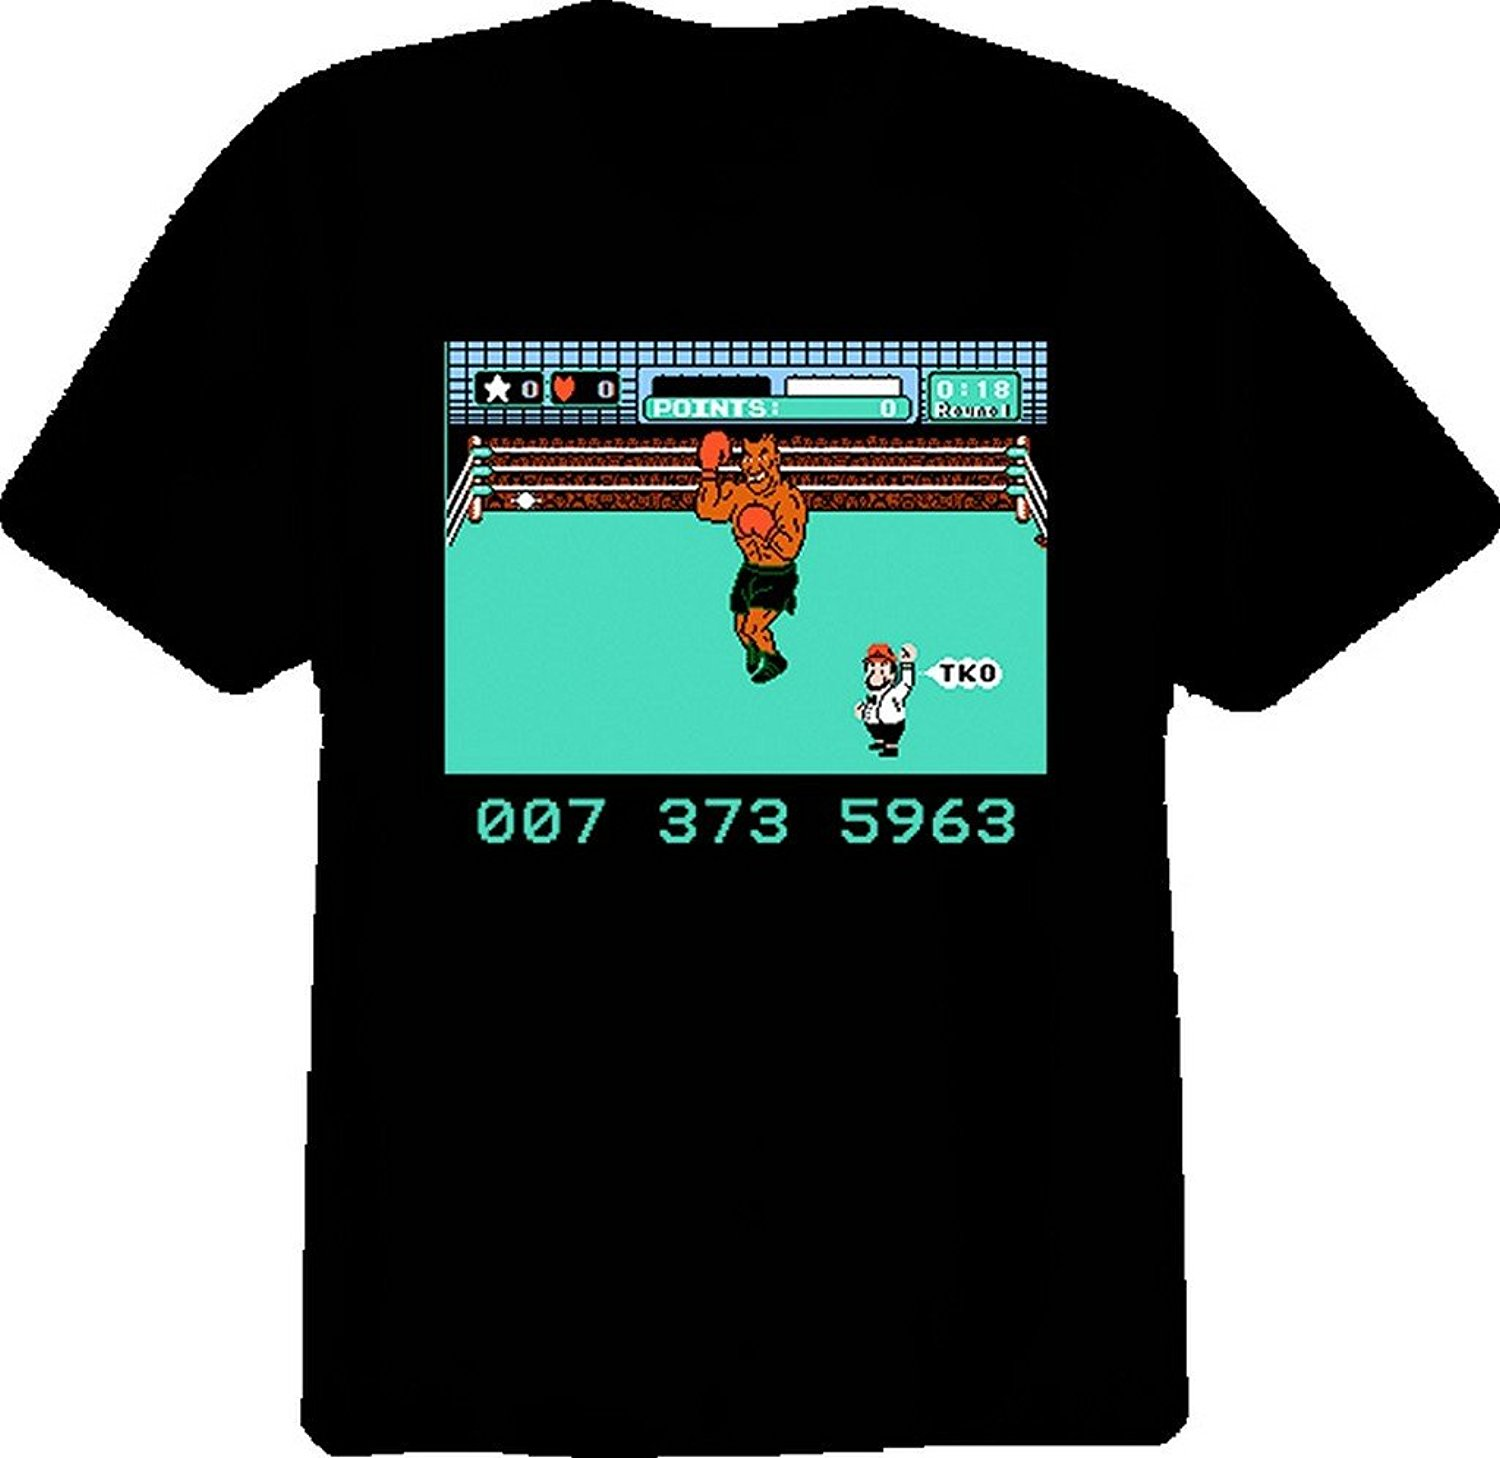 GILDAN Tshirt Men Black Short Sleeve Cotton Hip Hop T-shirt Print Tee Shirts Mike Tysons Punch Out Nes T Shirt